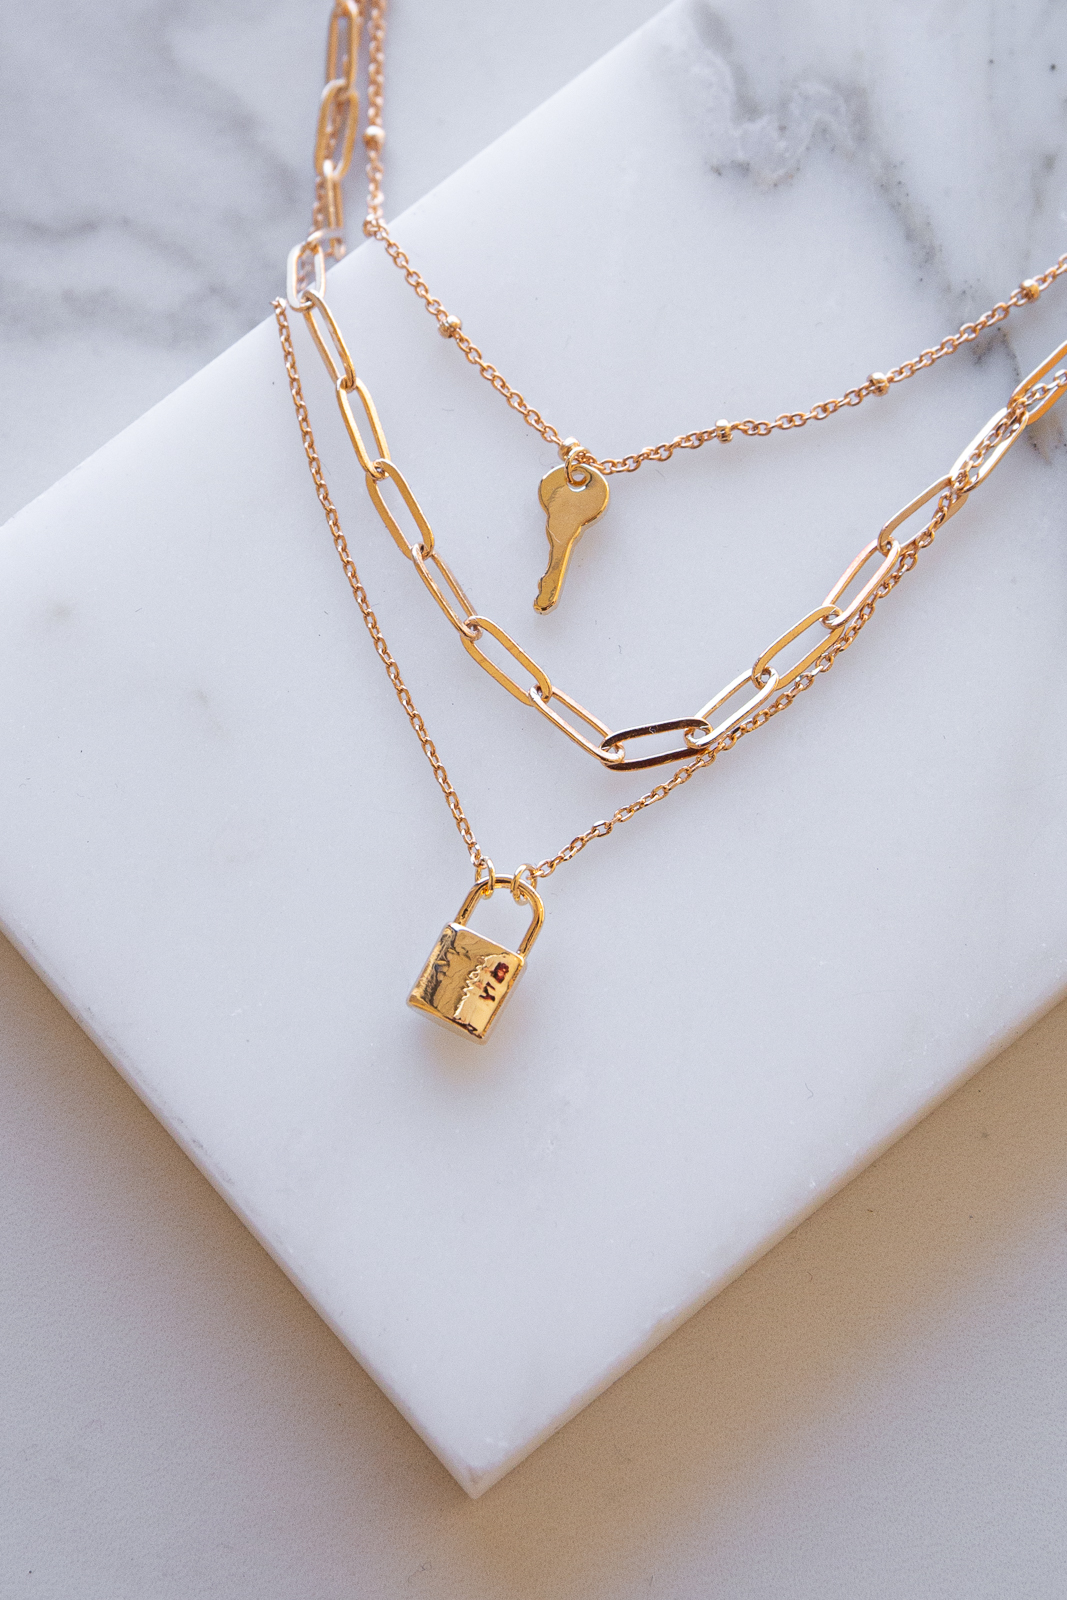 Gold Layered Chain Necklace with Lock and Key Charms